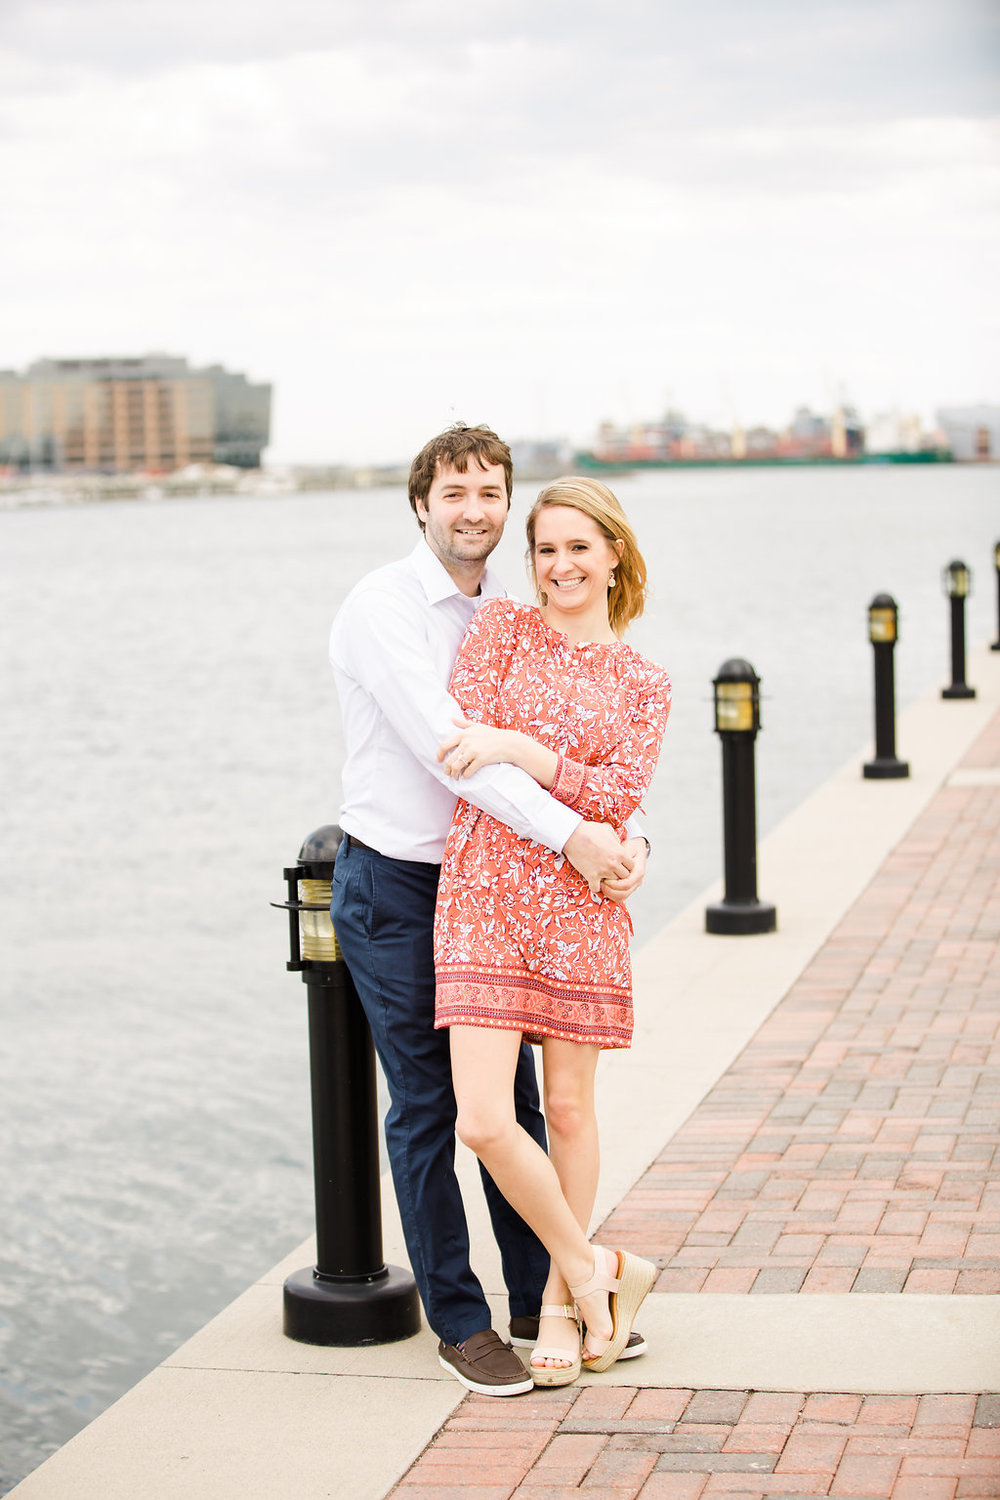 VnessPhotography_Jess&Andrew_Engaged-154.jpg